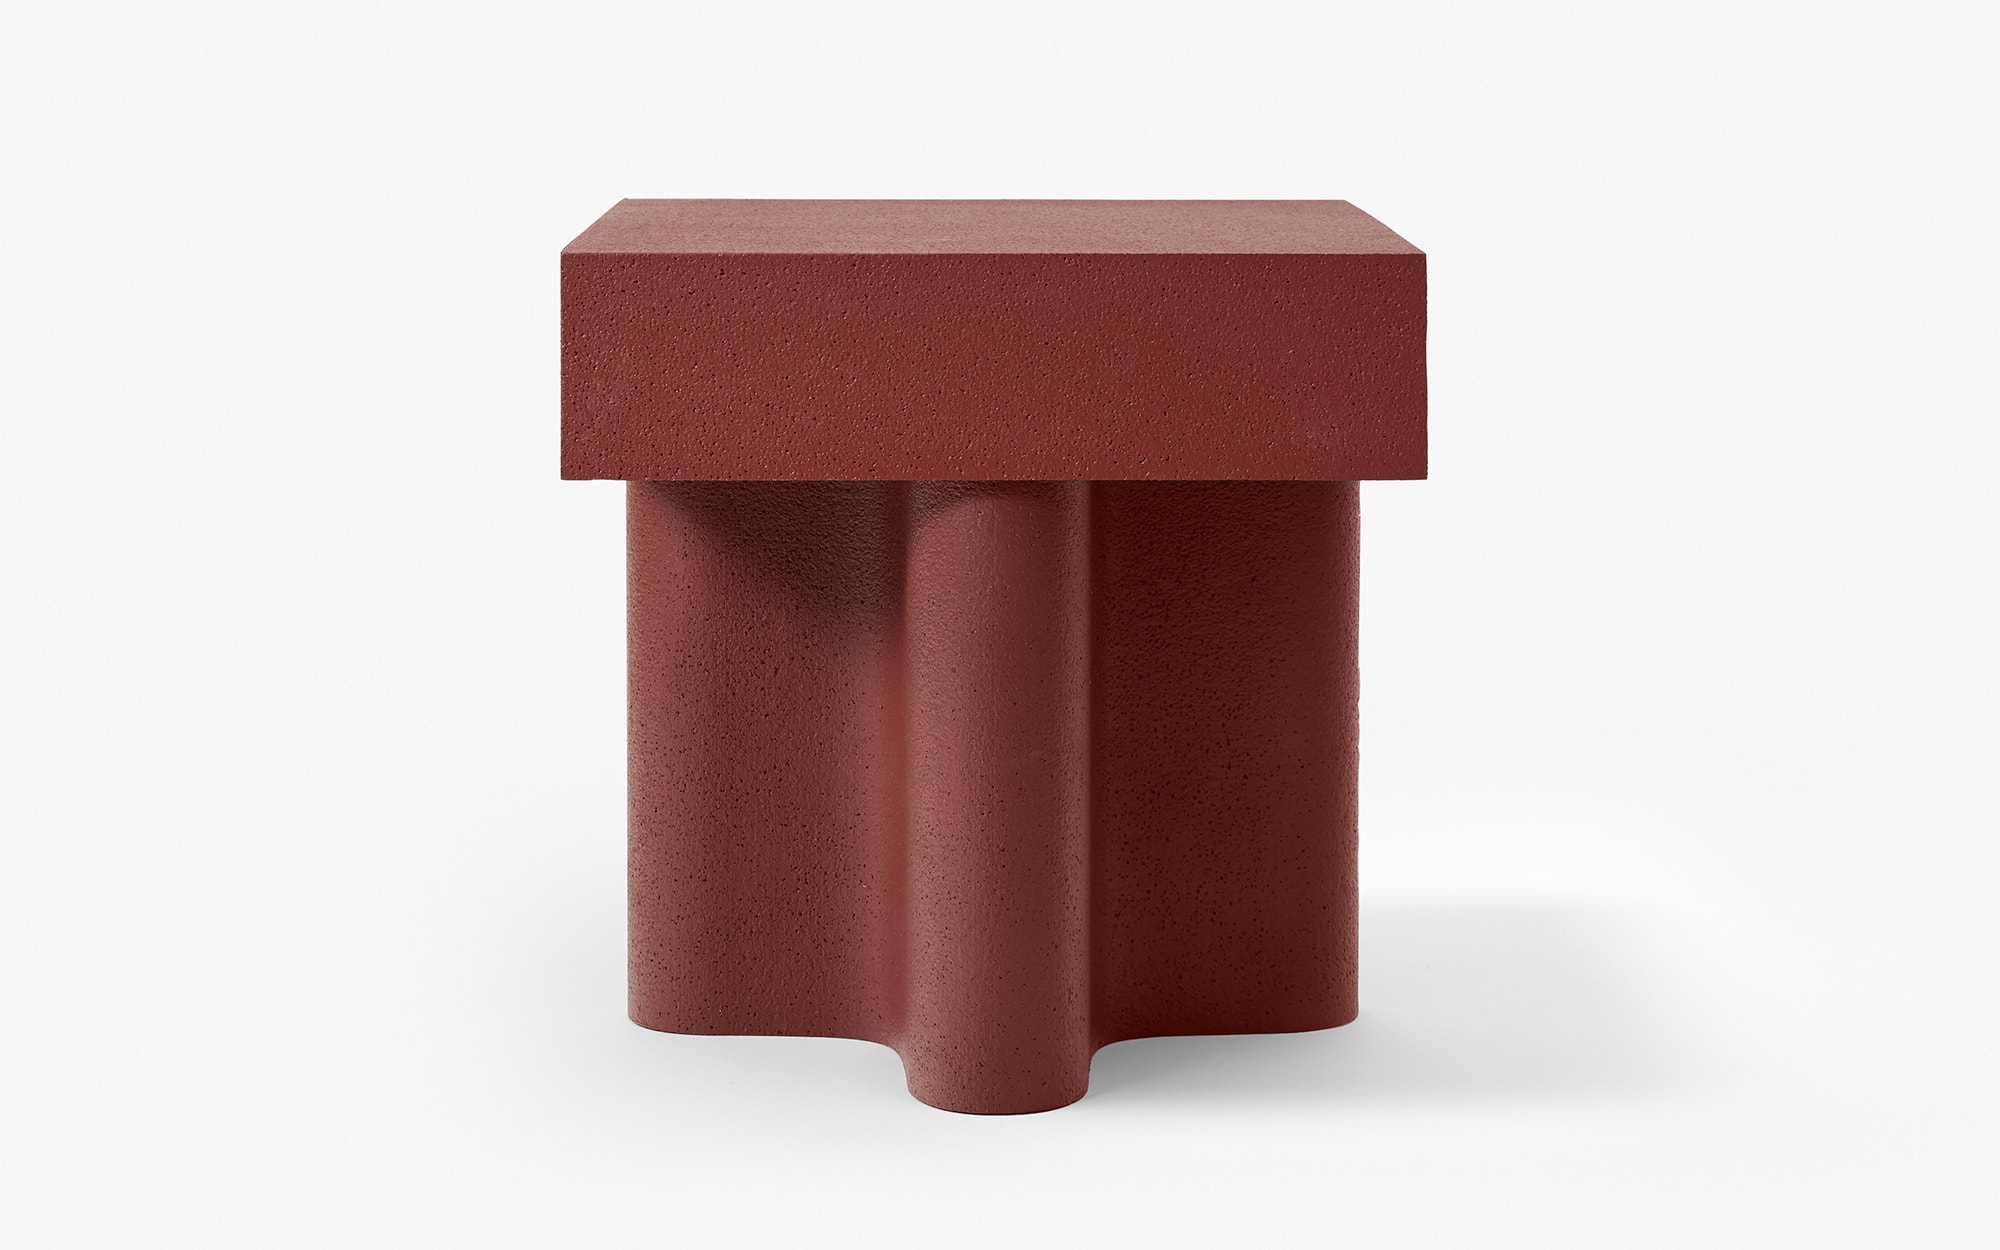 François Bauchet Azo-X side table